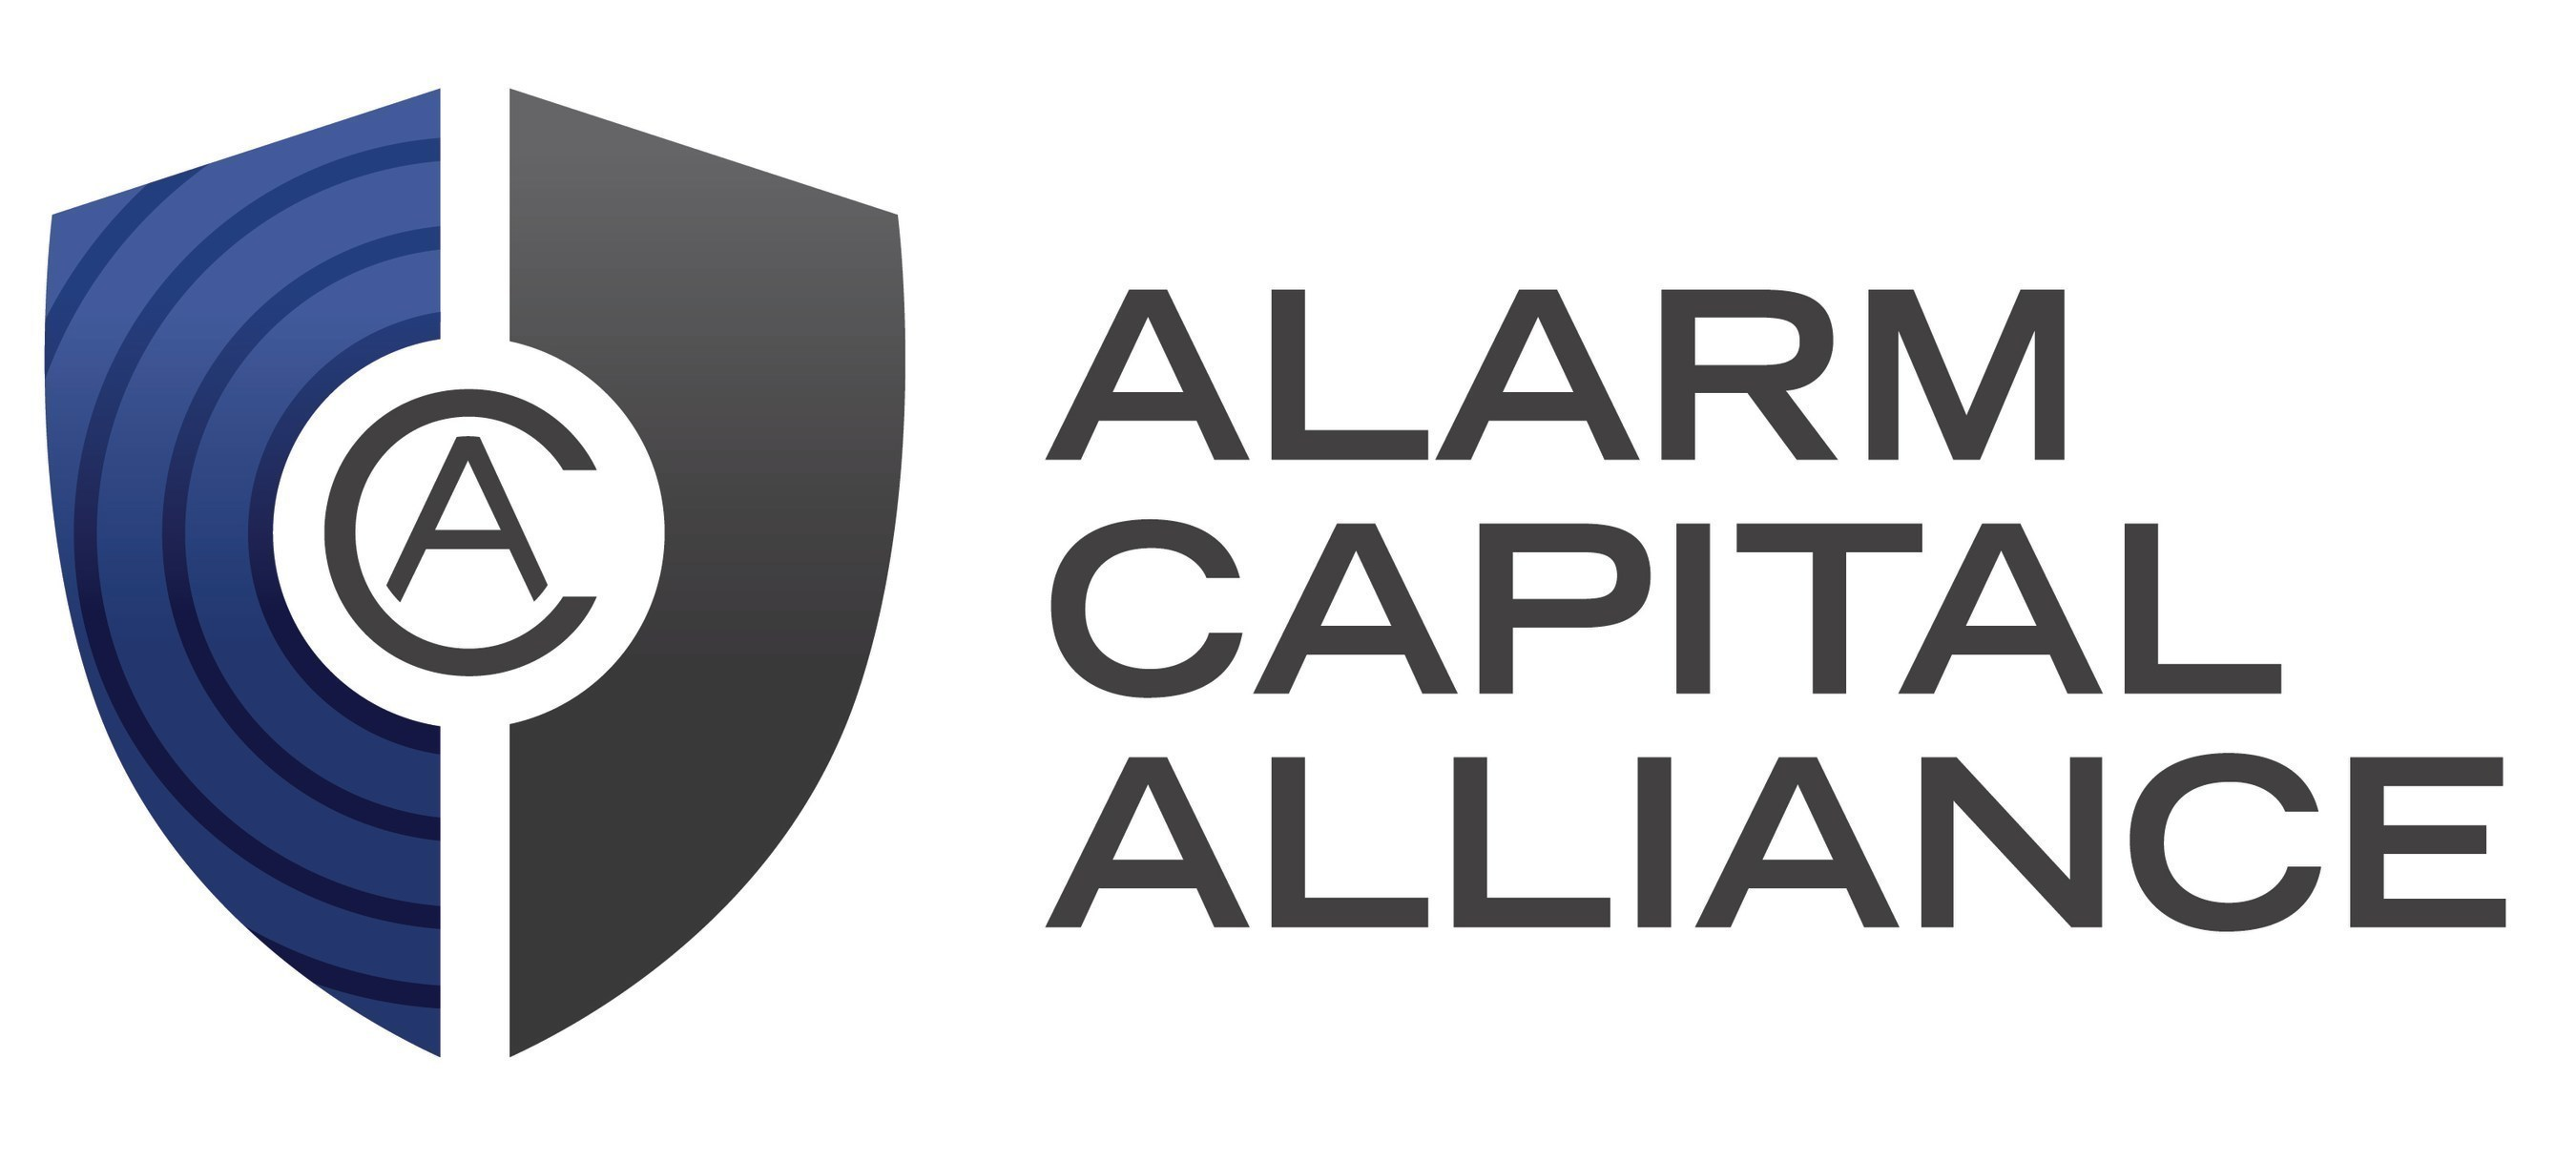 Alarm Capital Alliance Named 14th Largest Security Provider in the United States